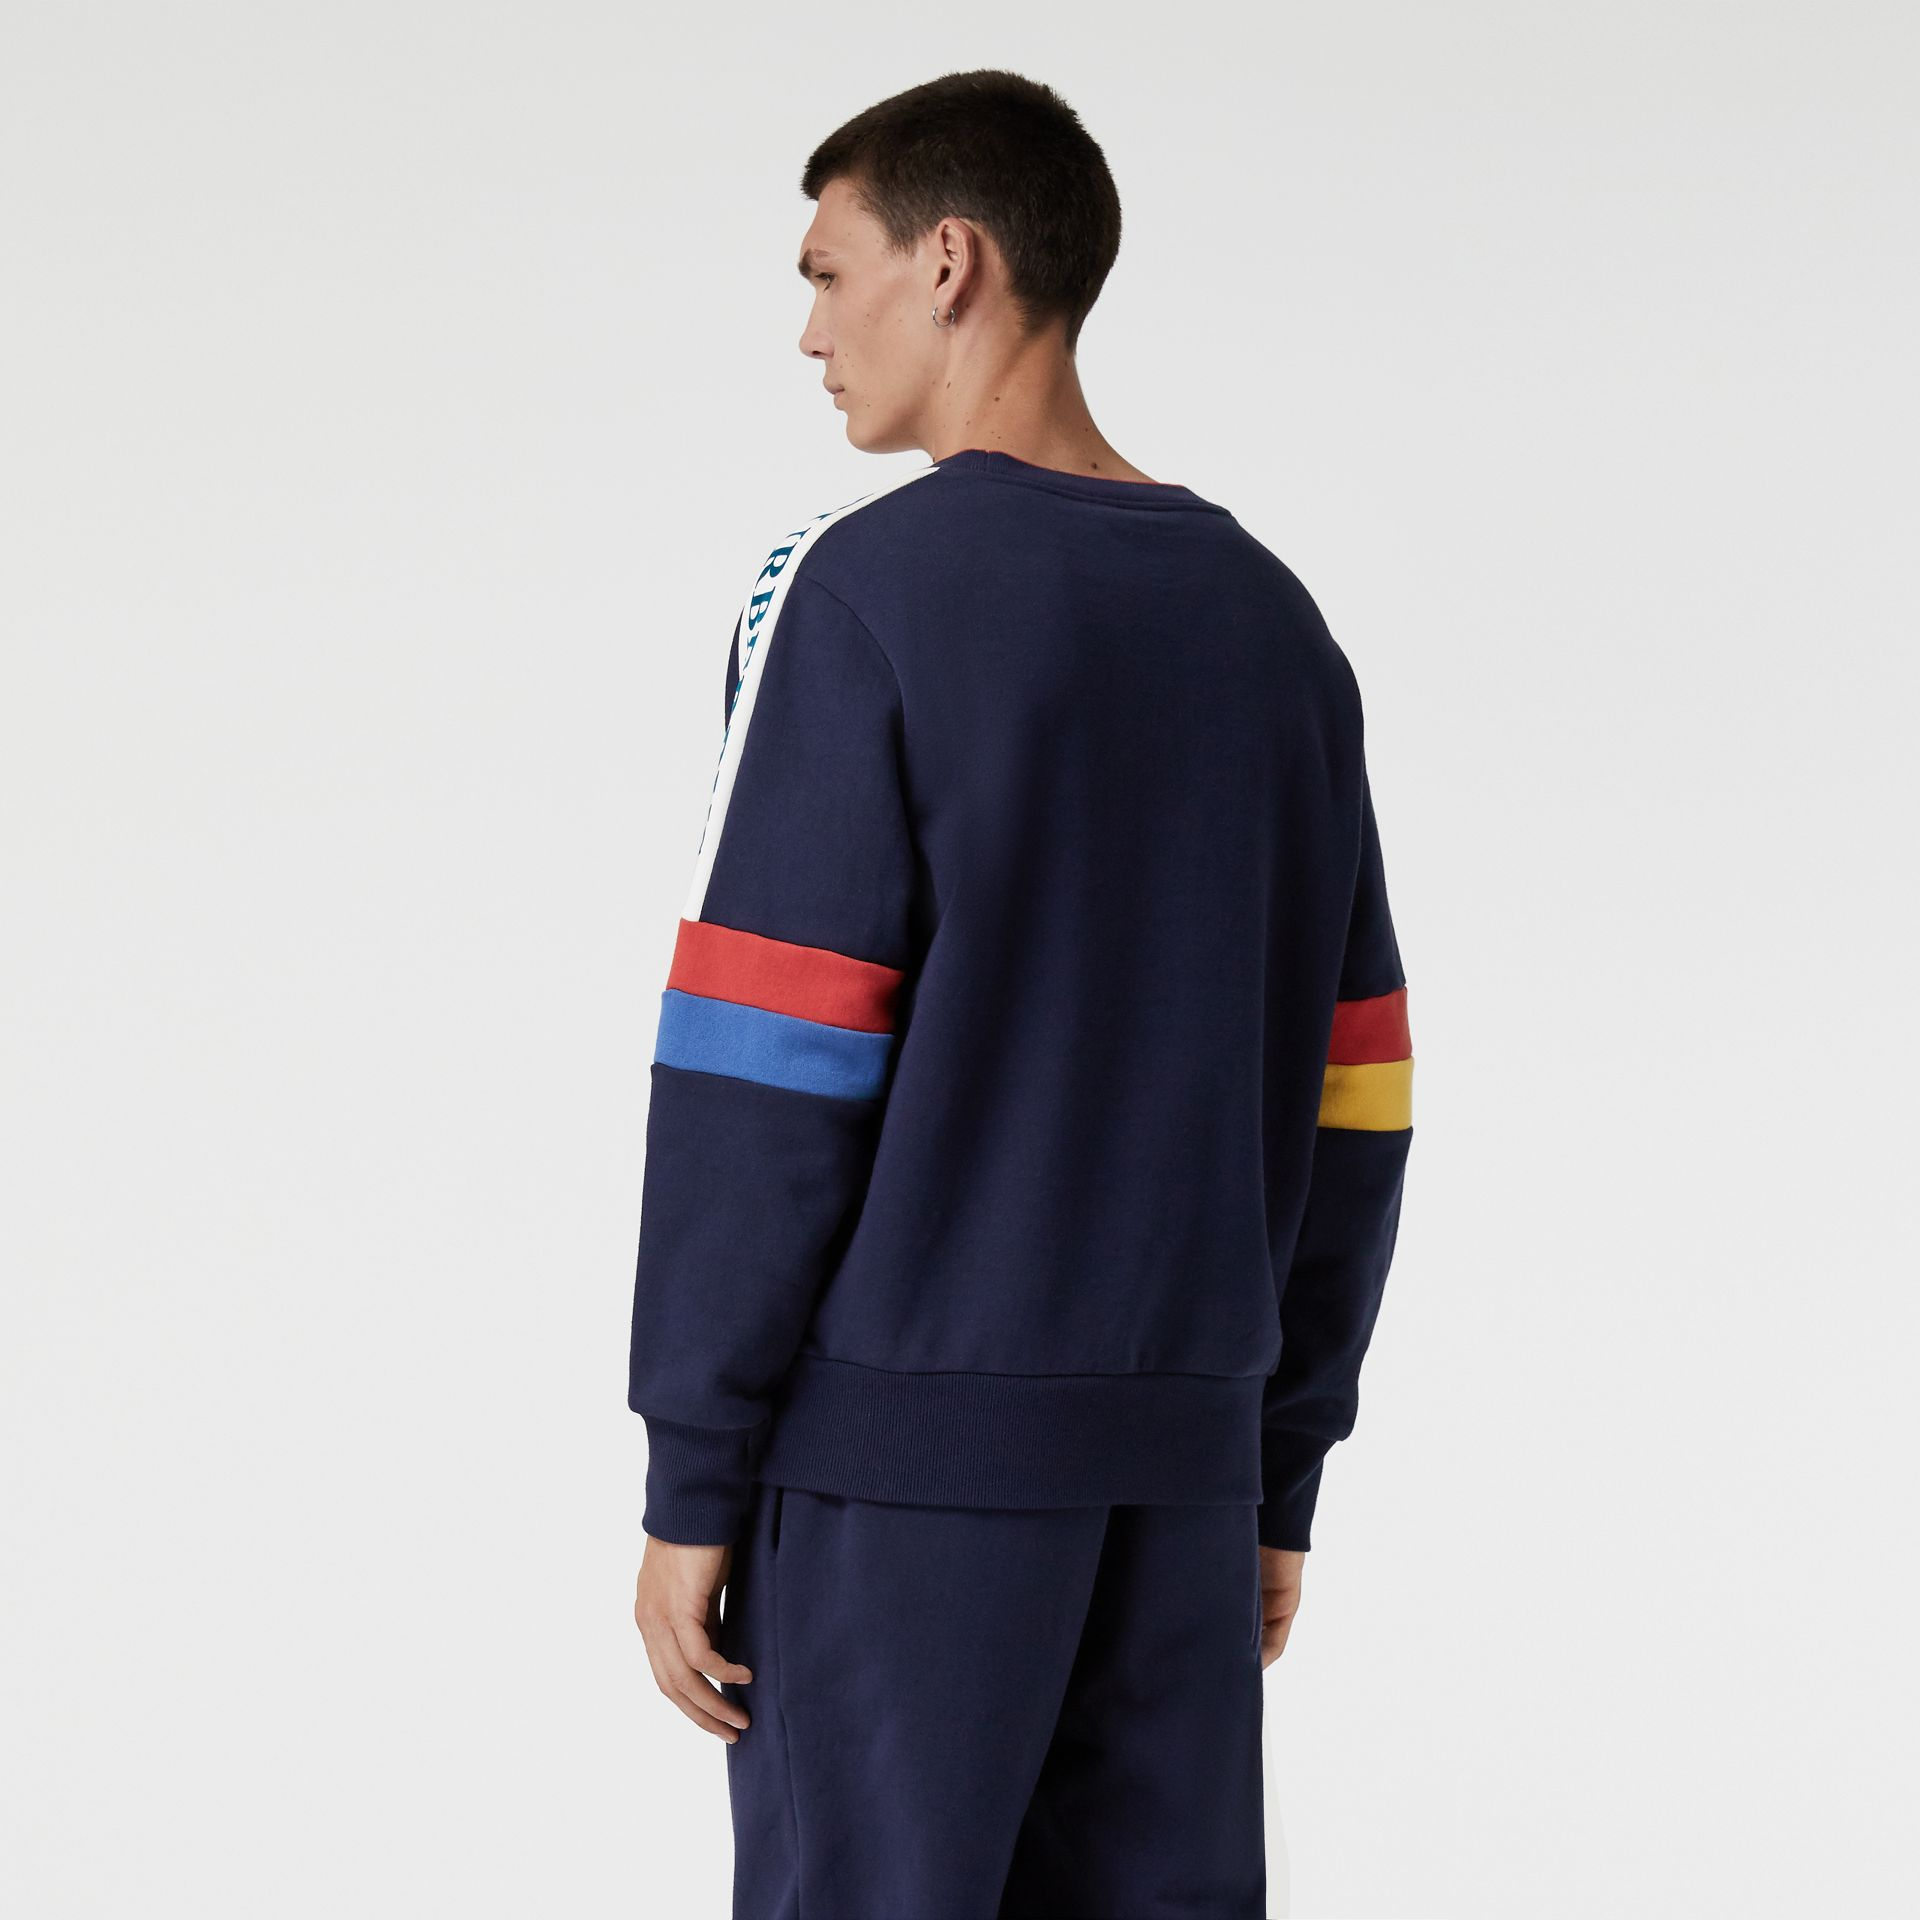 Colour Block Embroidered Archive Logo Sweatshirt in True Navy - Men | Burberry Australia - gallery image 2